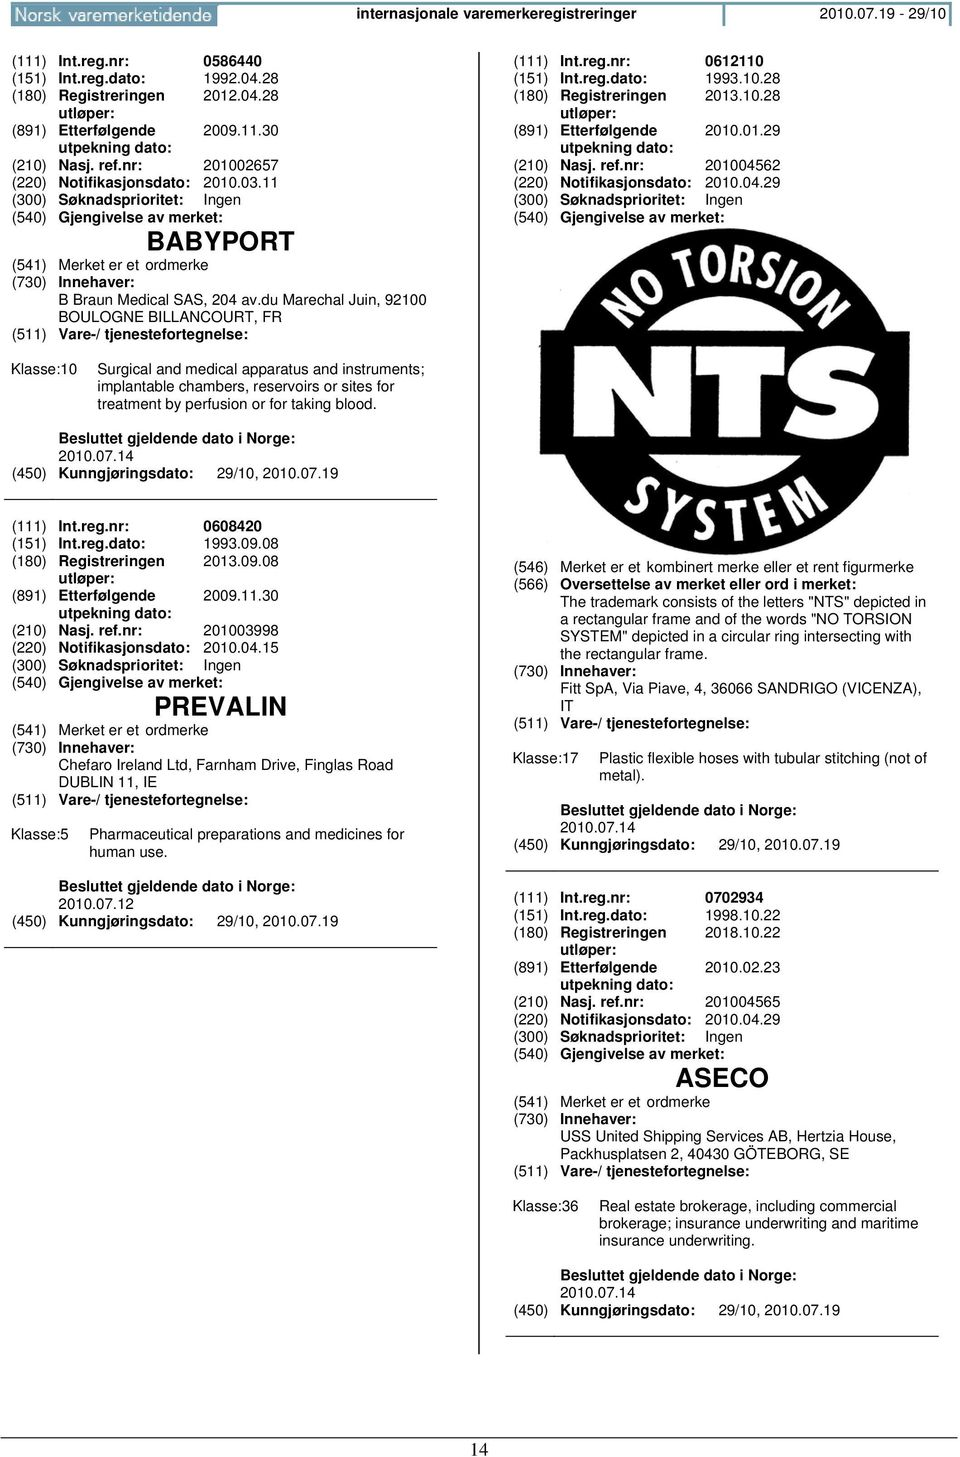 01.29 utpekning dato: (210) Nasj. ref.nr: 201004562 (220) Notifikasjonsdato: 2010.04.29 Klasse:10 Surgical and medical apparatus and instruments; implantable chambers, reservoirs or sites for treatment by perfusion or for taking blood.